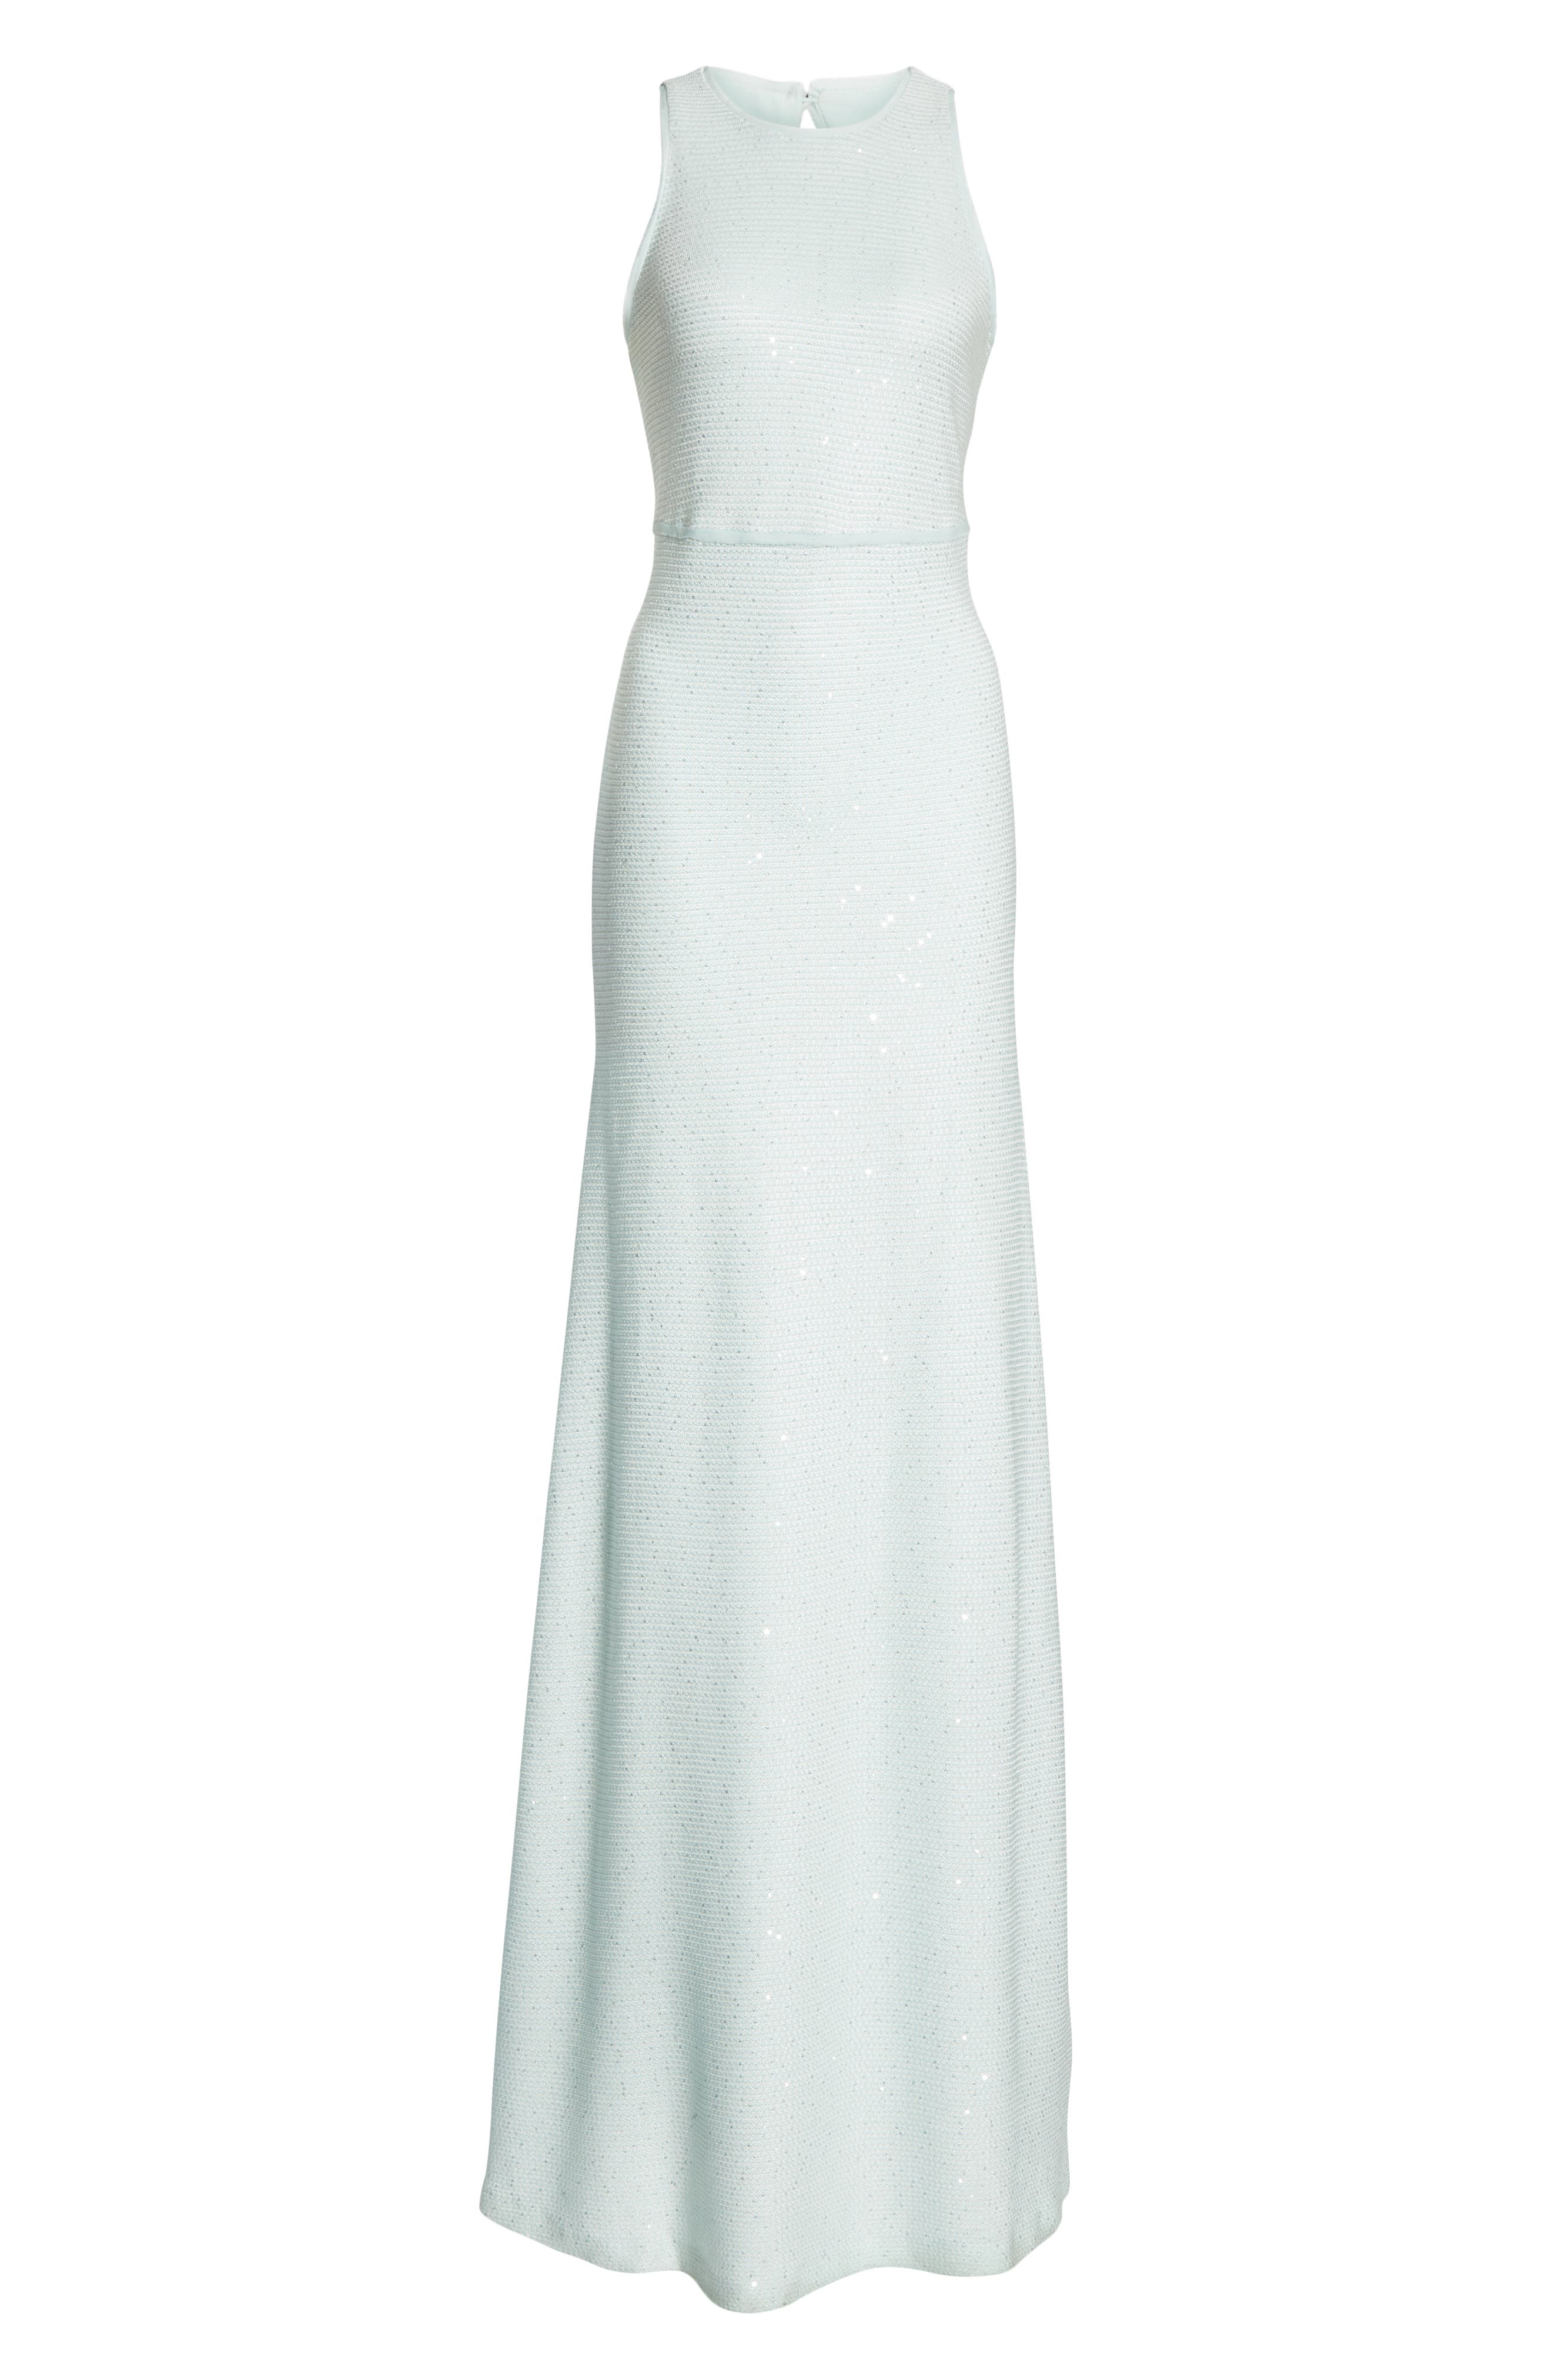 ST. JOHN COLLECTION, Links Sequin Knit Gown, Alternate thumbnail 6, color, OPAL